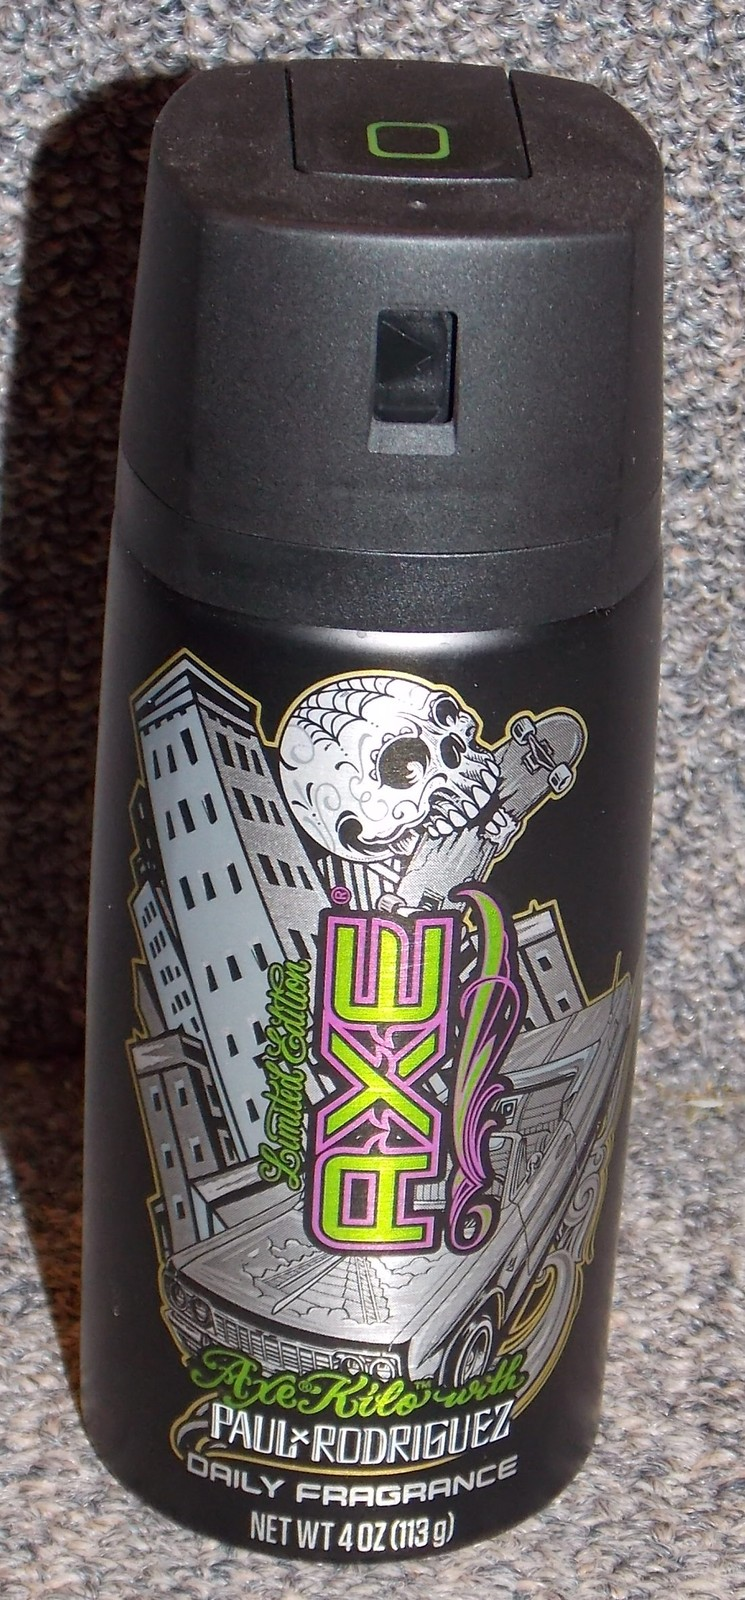 Primary image for Axe Limited Edition Paul Rodriguez Body Spray